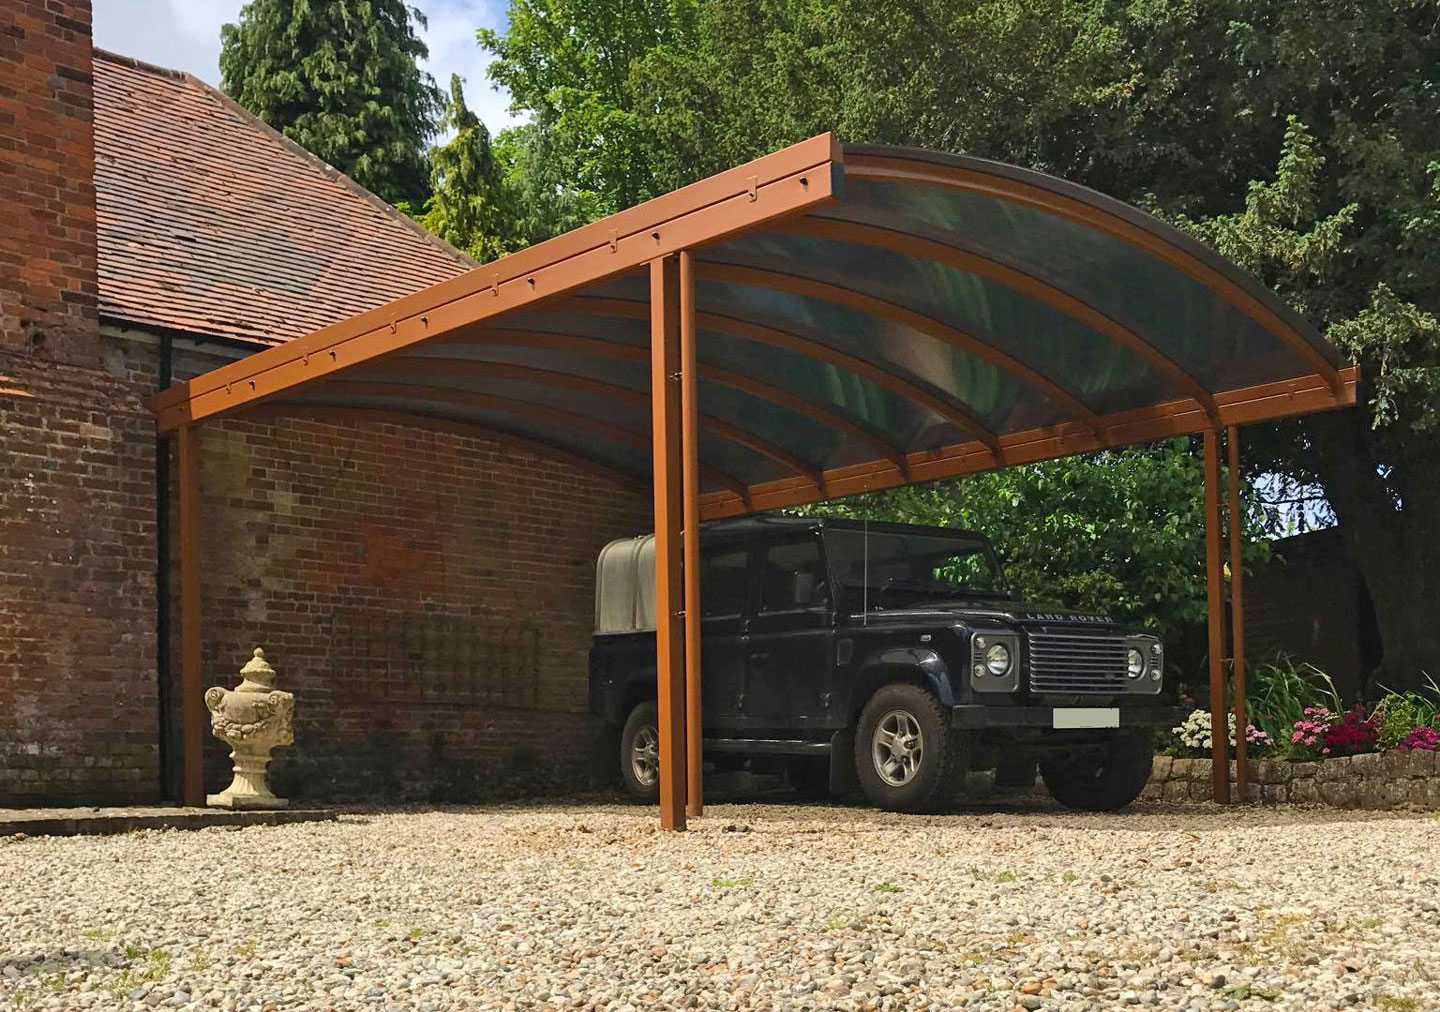 carport archives kappion carports canopies. Black Bedroom Furniture Sets. Home Design Ideas